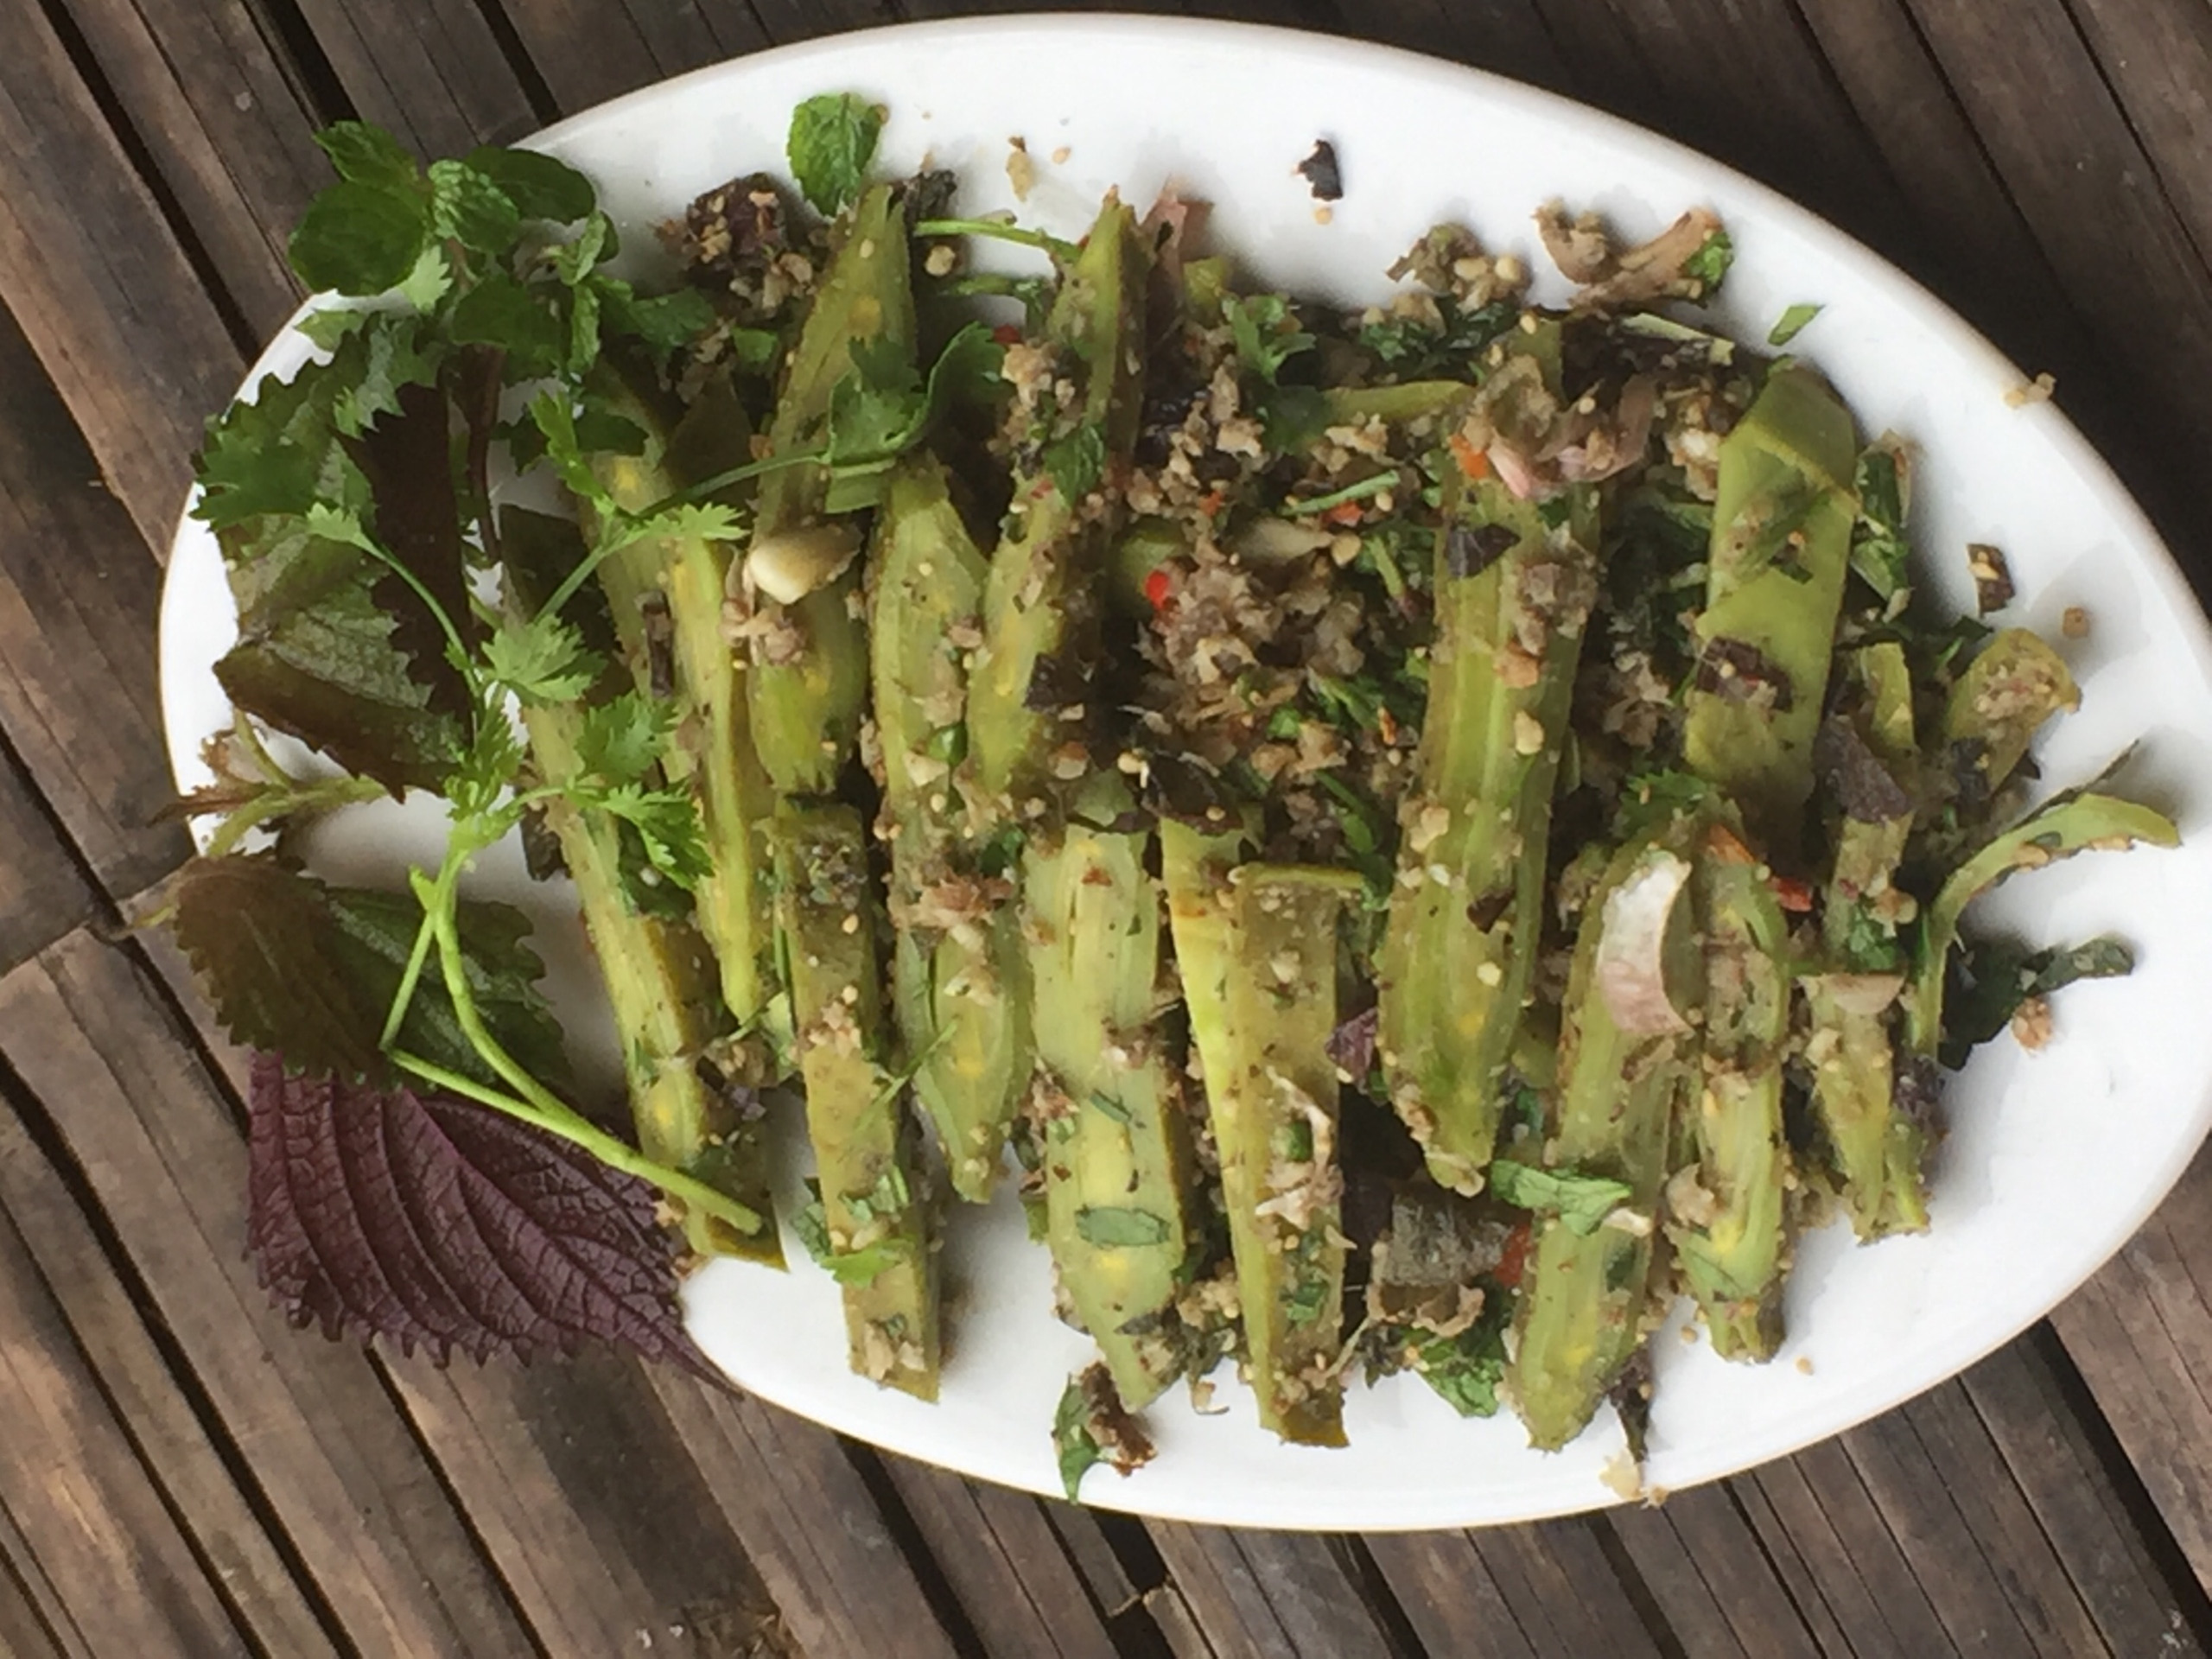 Oroxylum salad with finely-chopped grilled fish